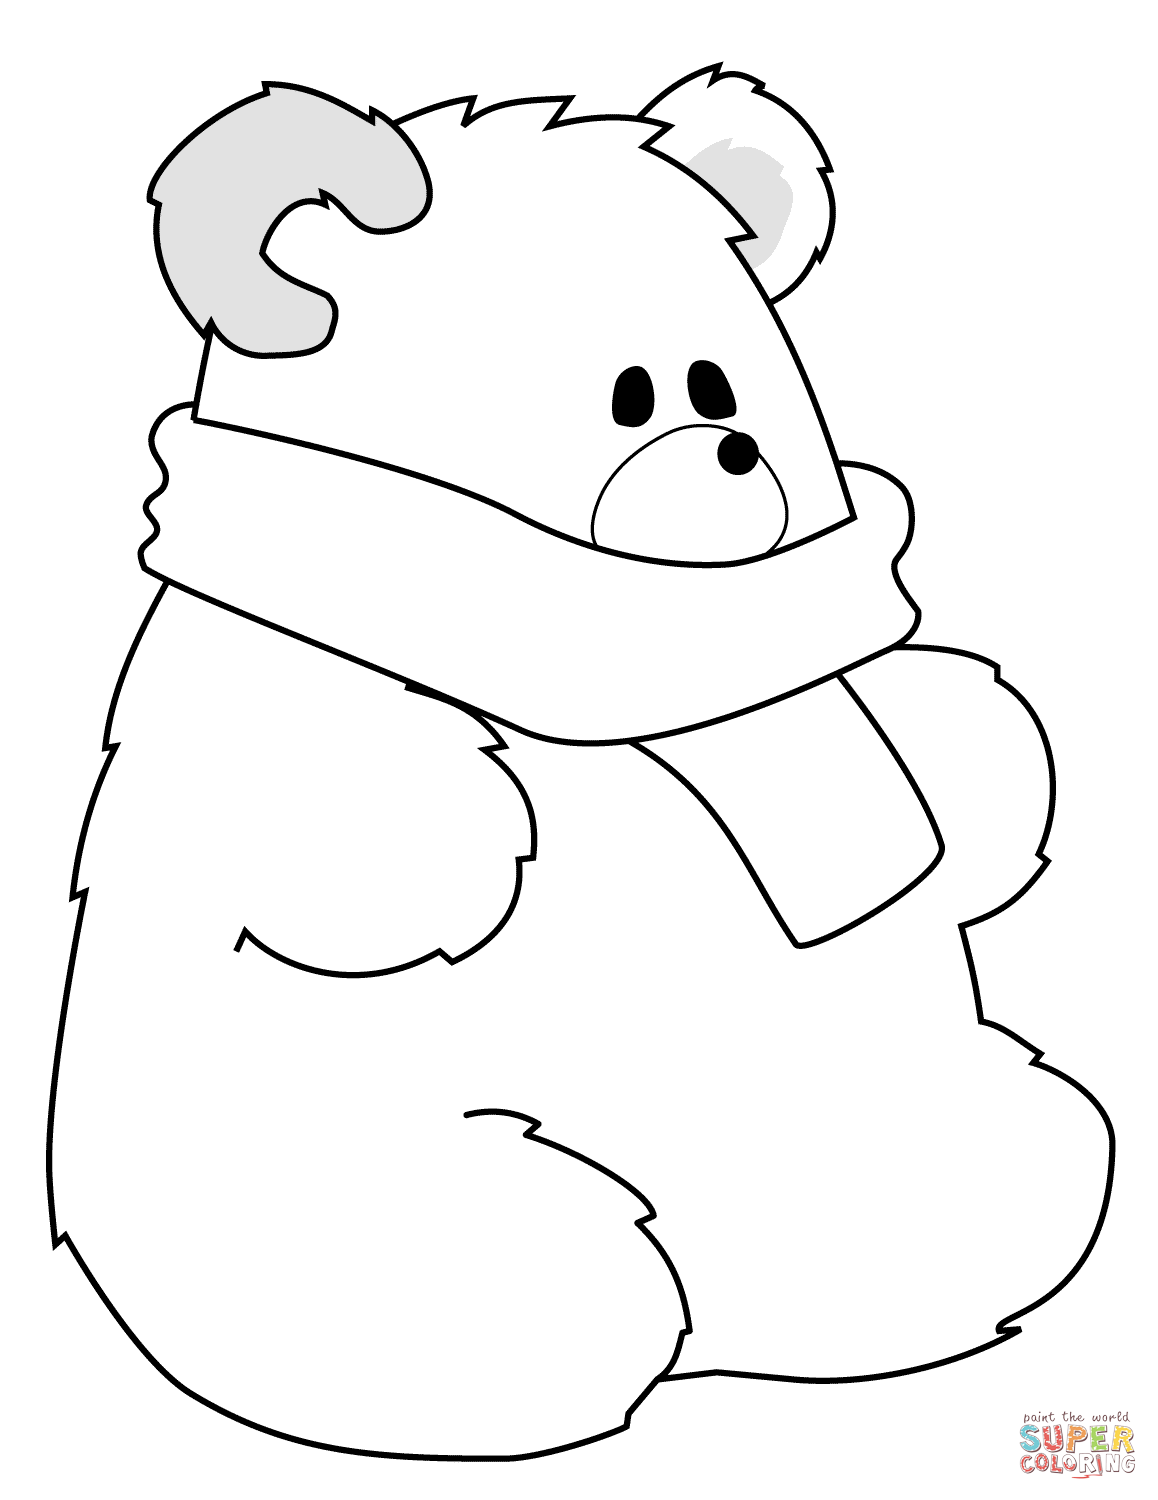 Polar Bears Drawing At Getdrawings Com Free For Personal